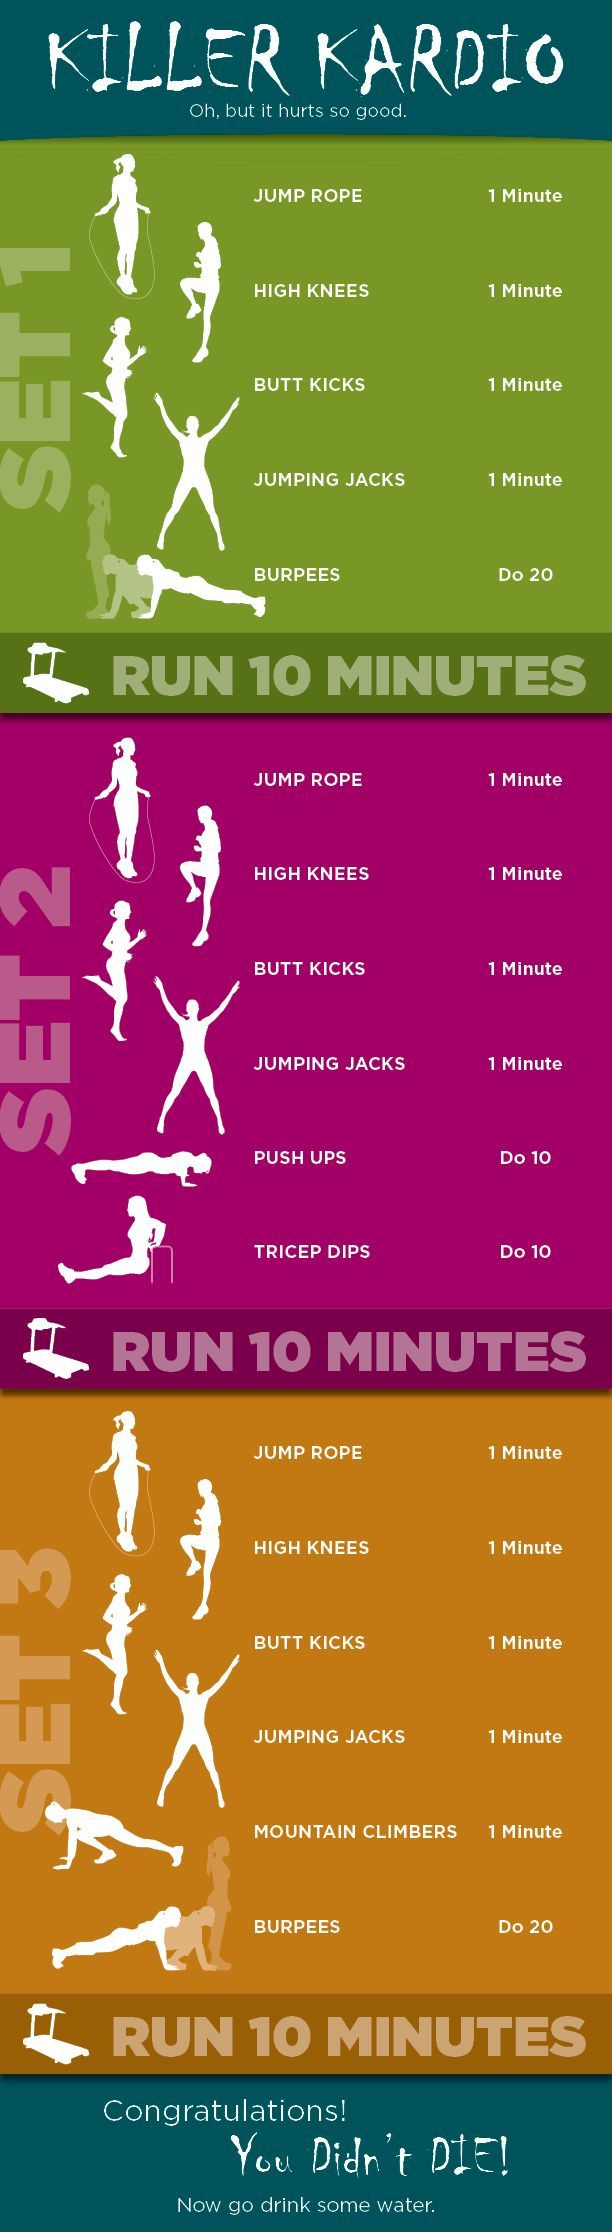 Challenging cardio workout that will make you sweat but won't kill ya! Get your workout on, ladies!!!   Fantasmo Fitness, fitness inspiration #healthy #fit #happy